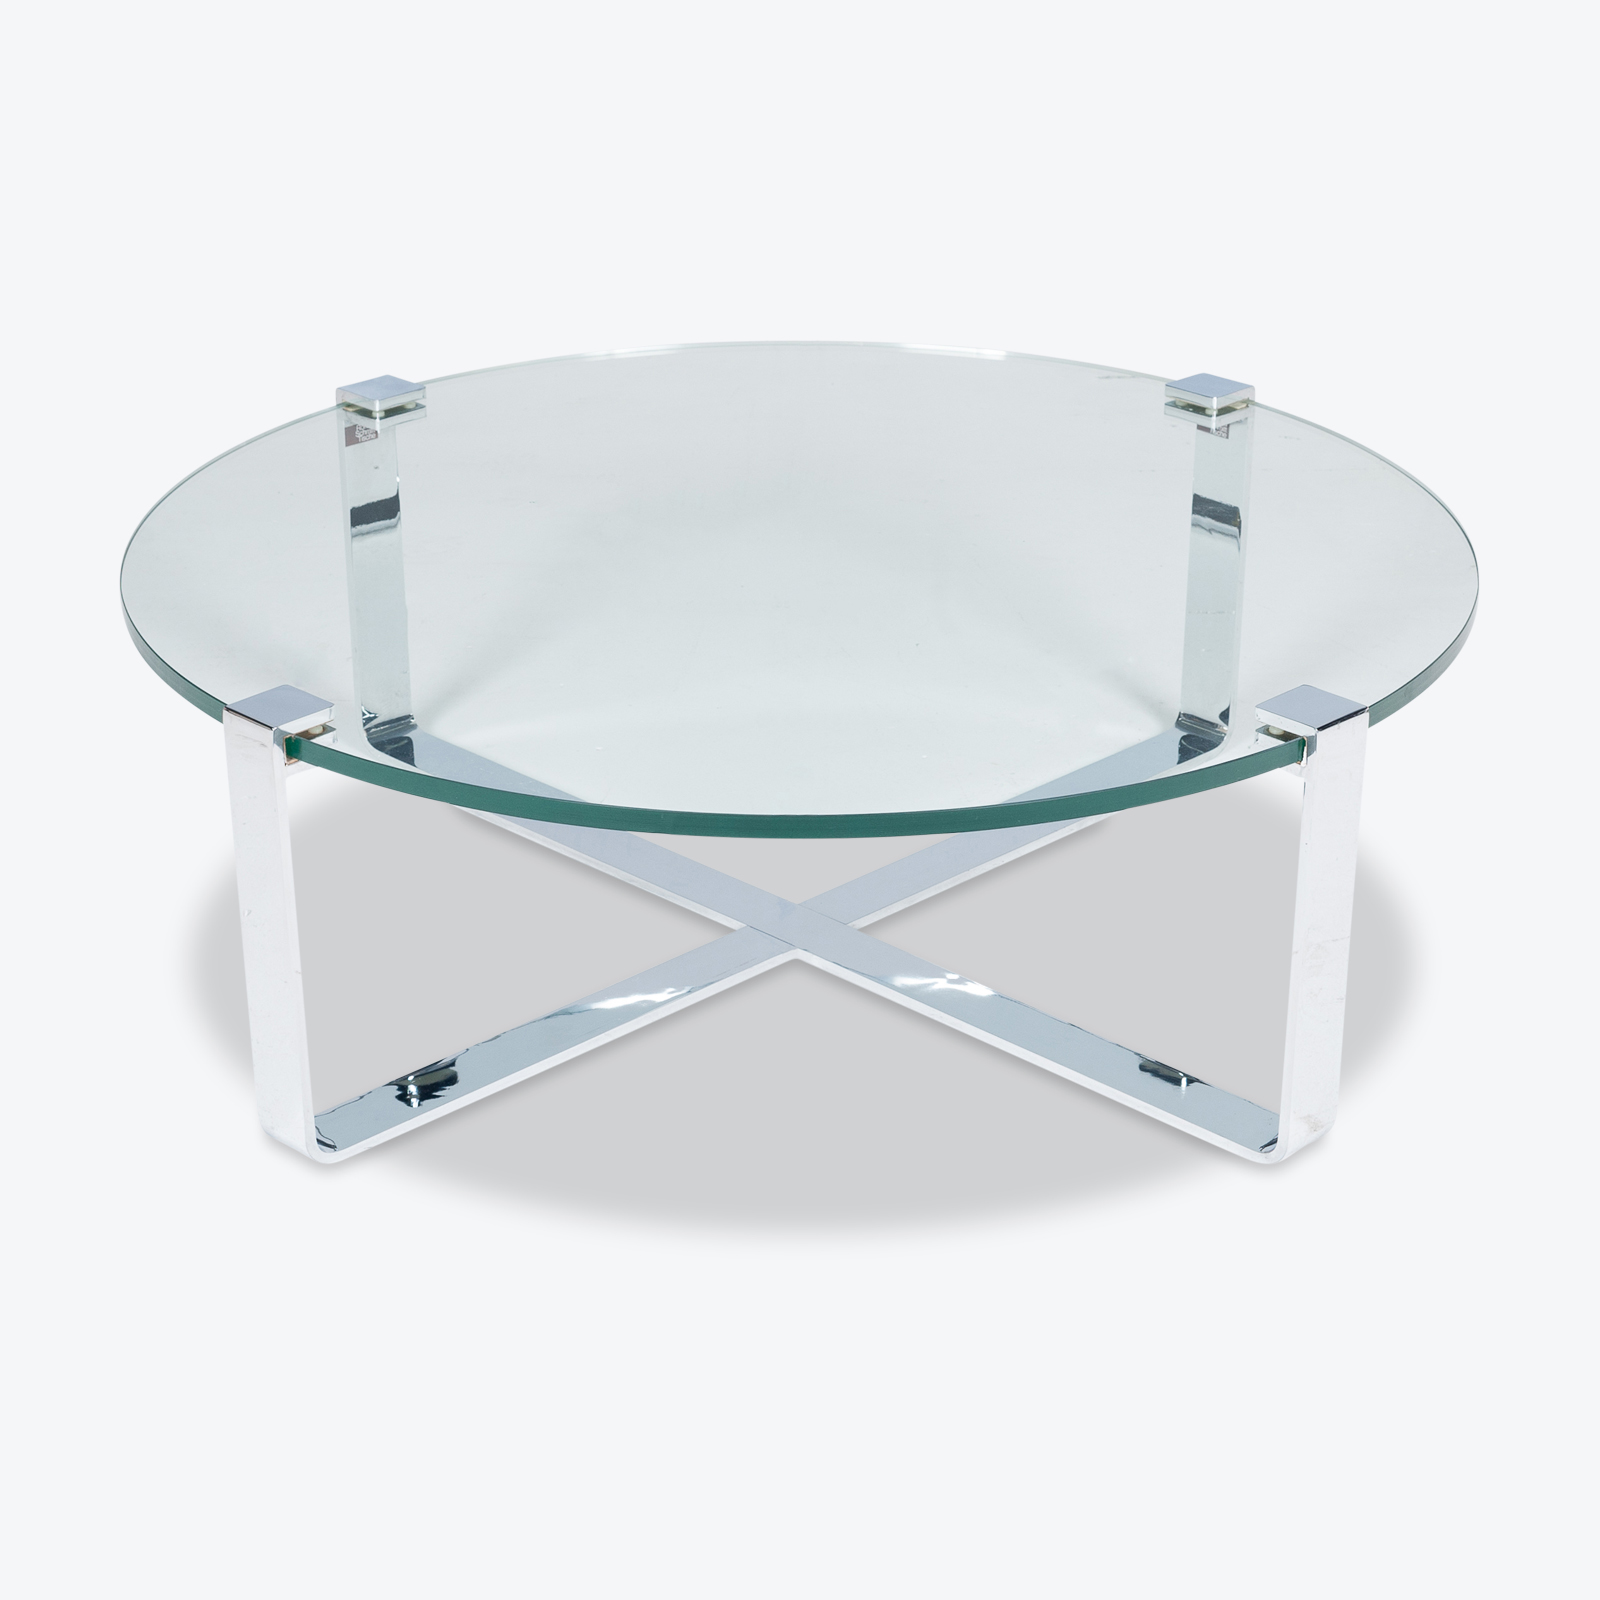 Round Coffee Table In Glass And Polished Chrome By Friedrich Wilhelm Moller For Ronald Schmitt, 1970s, Germany Hero